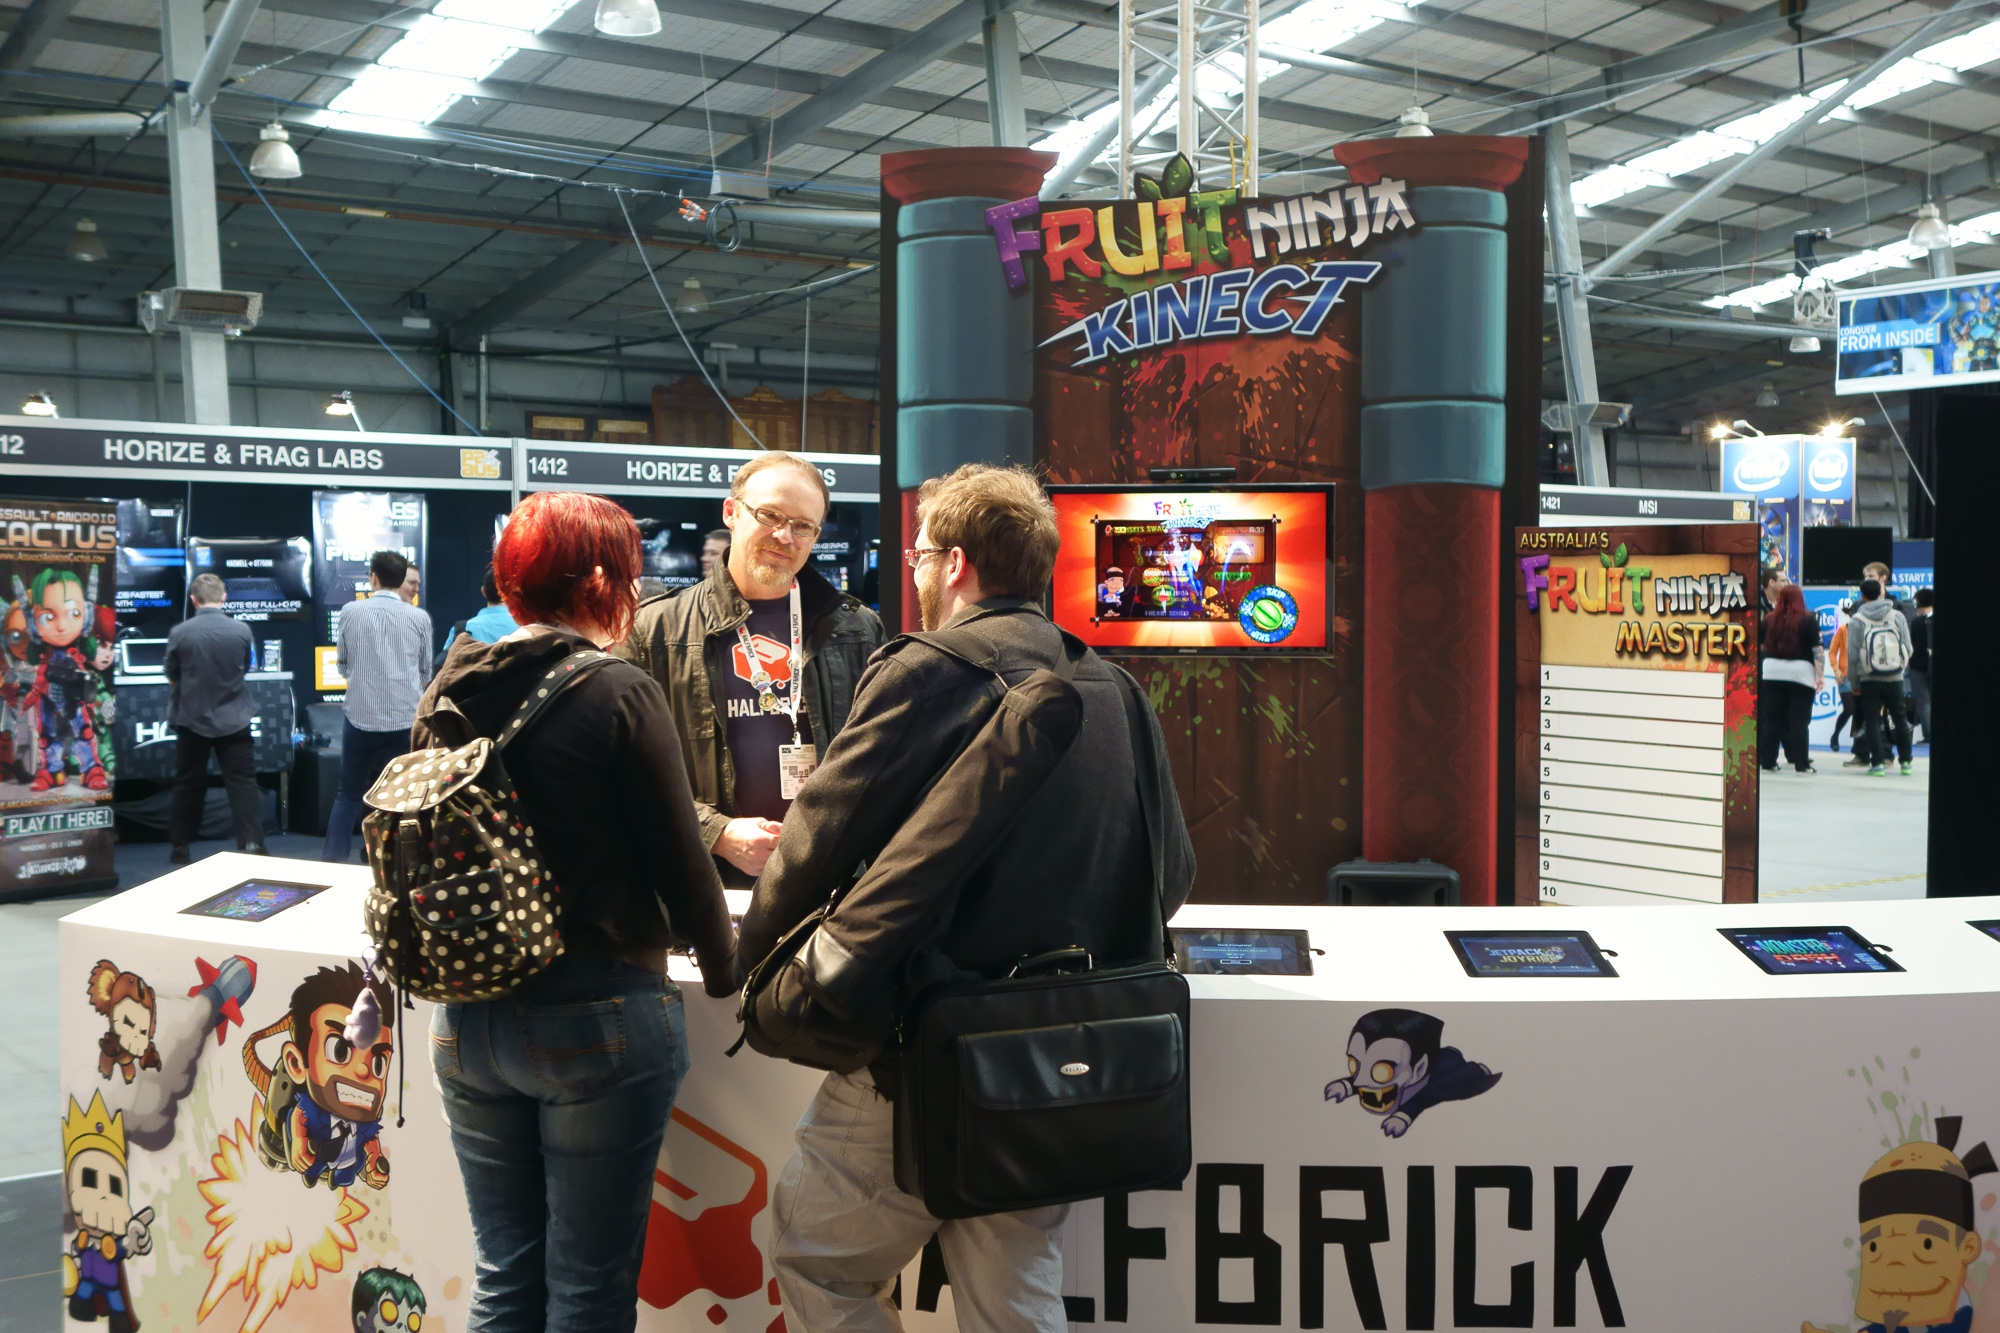 It should come as no surprise that Halfbrick's Fruit Ninja Kinect was always popular. I do feel for those poor iPads, though